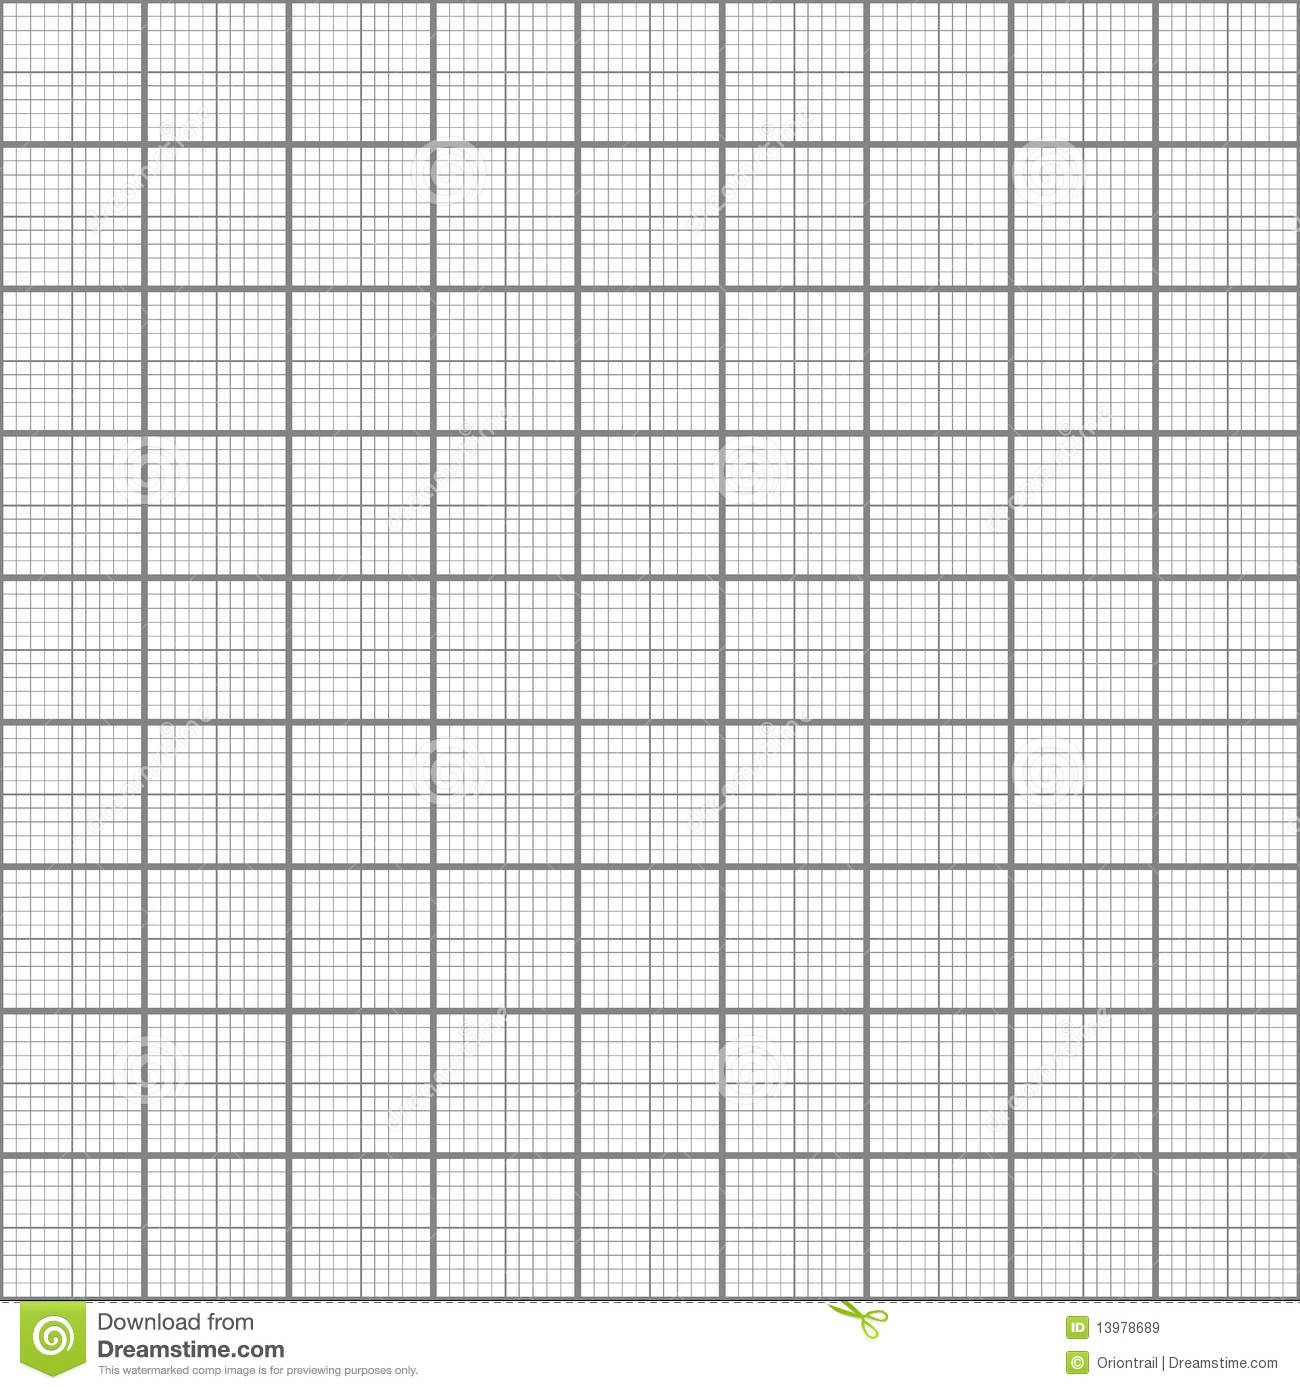 Scientific Grid Paper Royalty Free Stock Images.